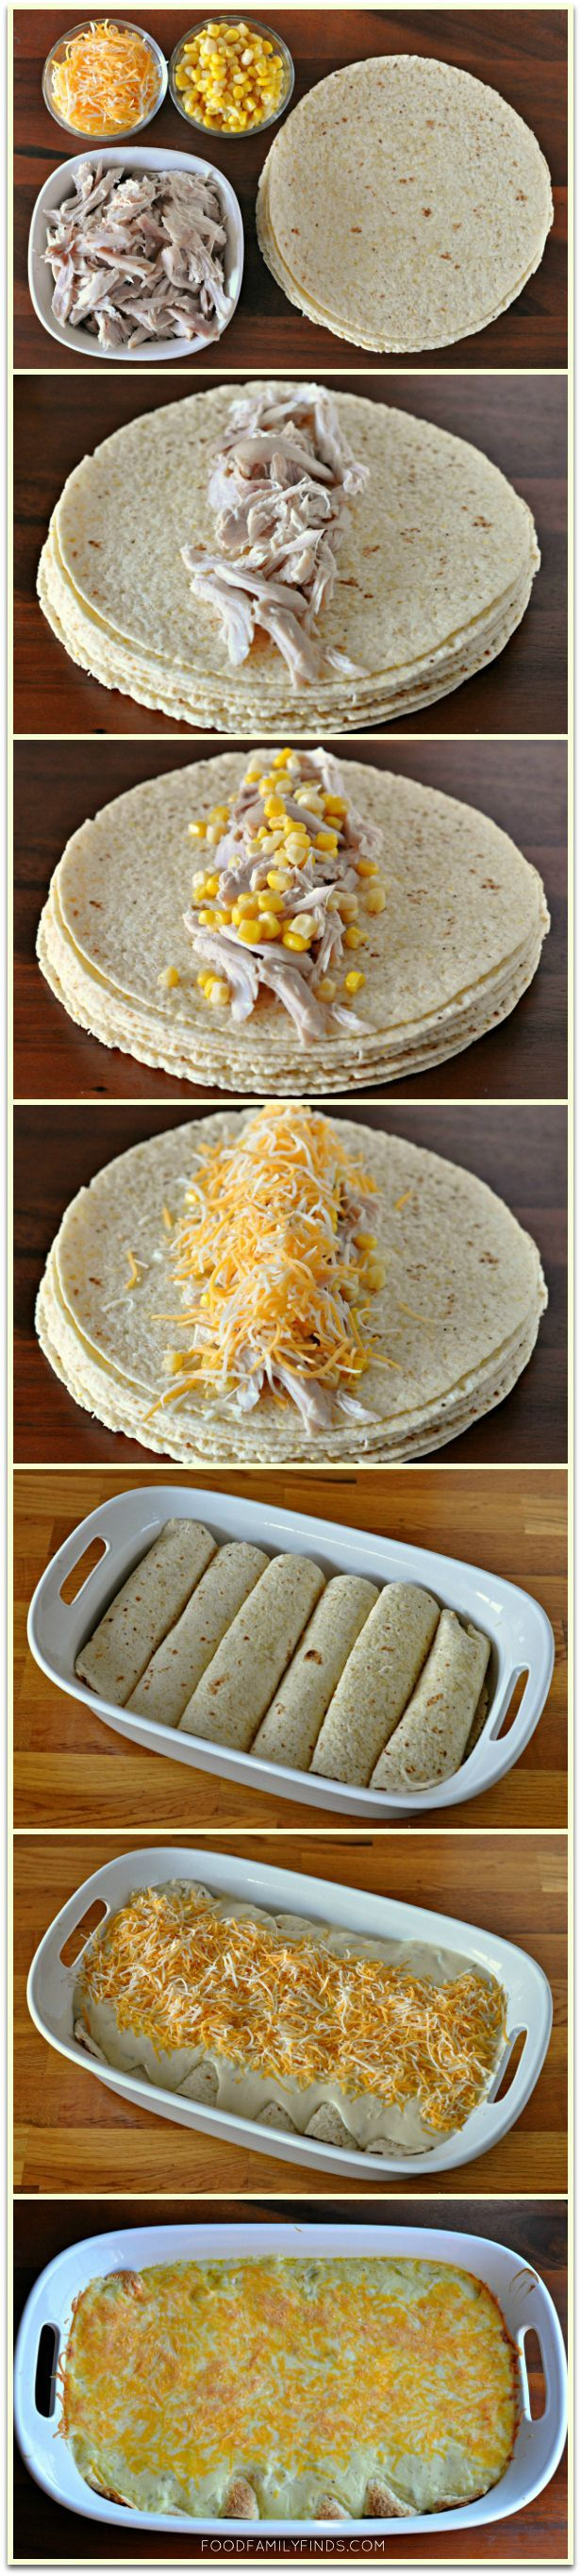 Easy and Creamy White Chicken Enchiladas. With small adjustments it will be even more healthy.